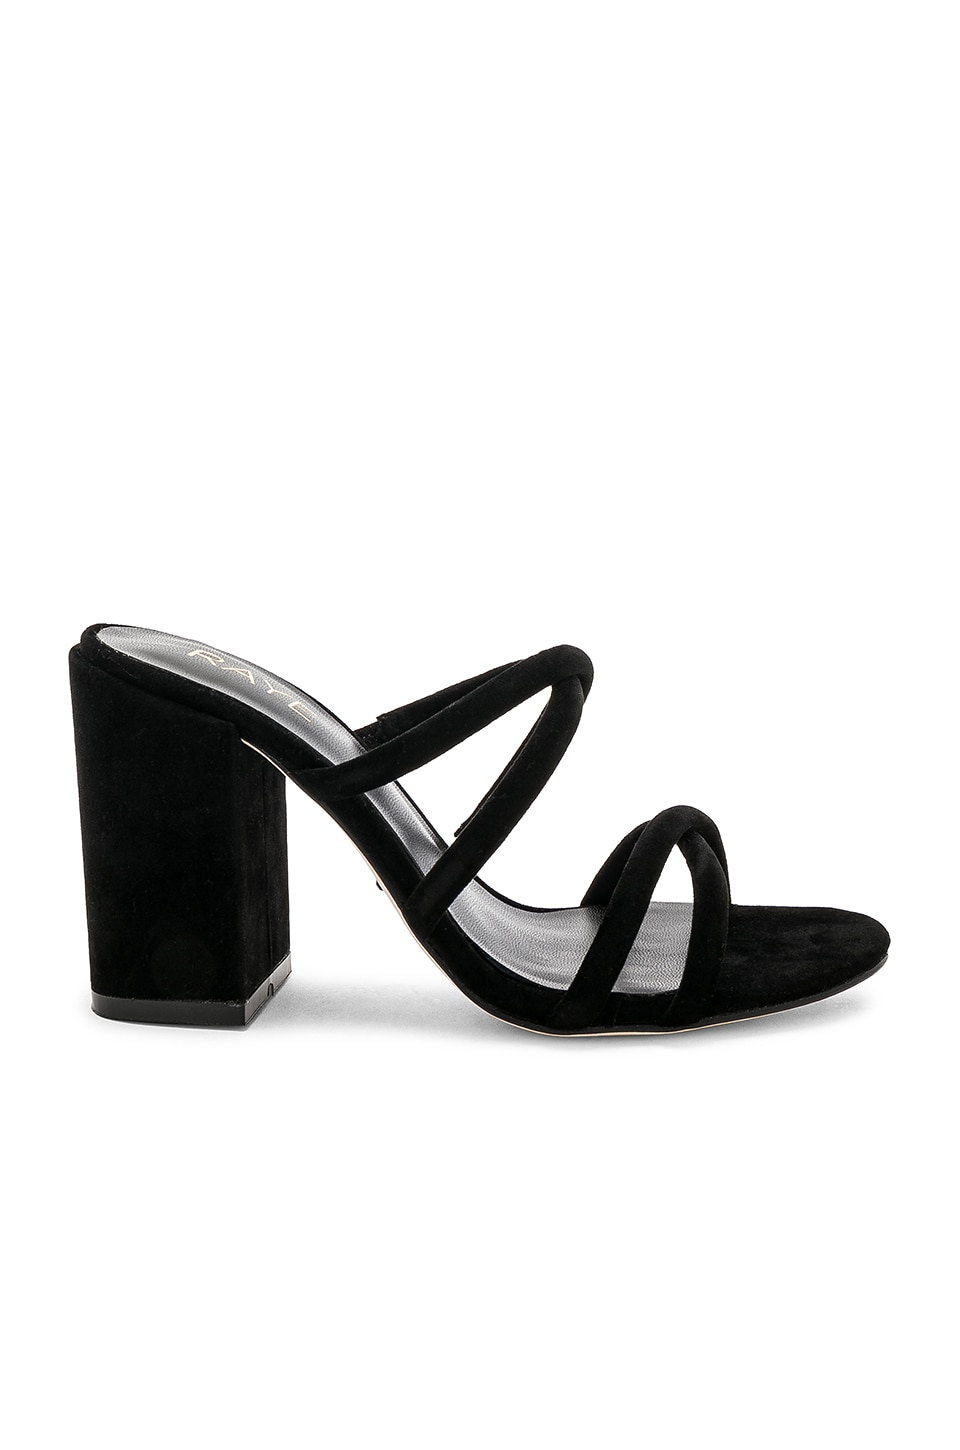 RAYE Caia Heel in Black